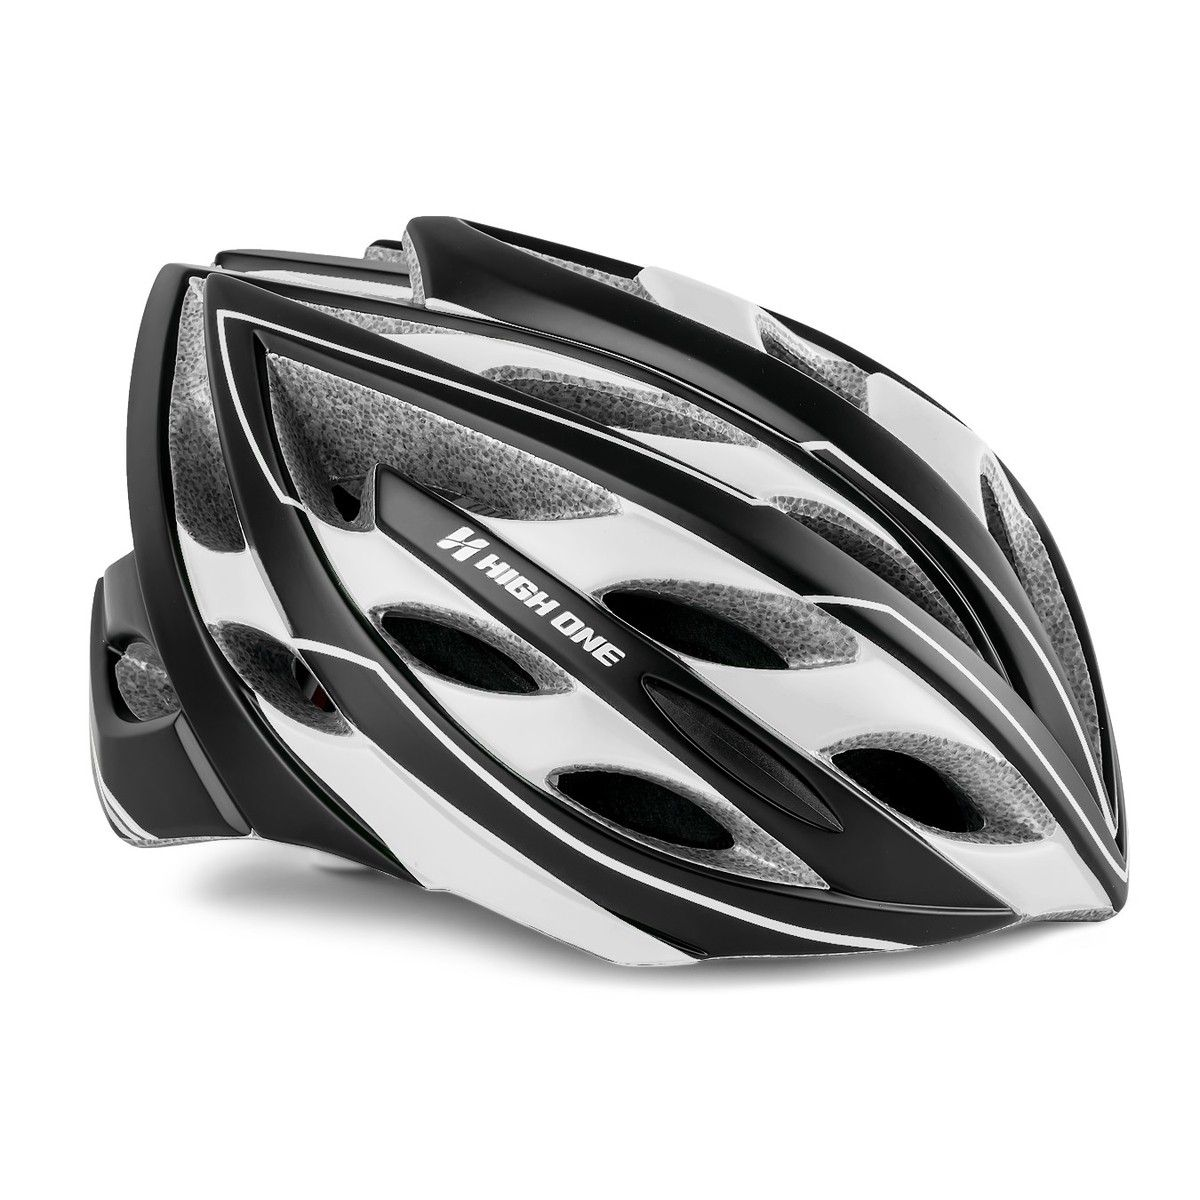 Capacete High One SV 90 In Mold Pto/Branco MTB Speed Bike